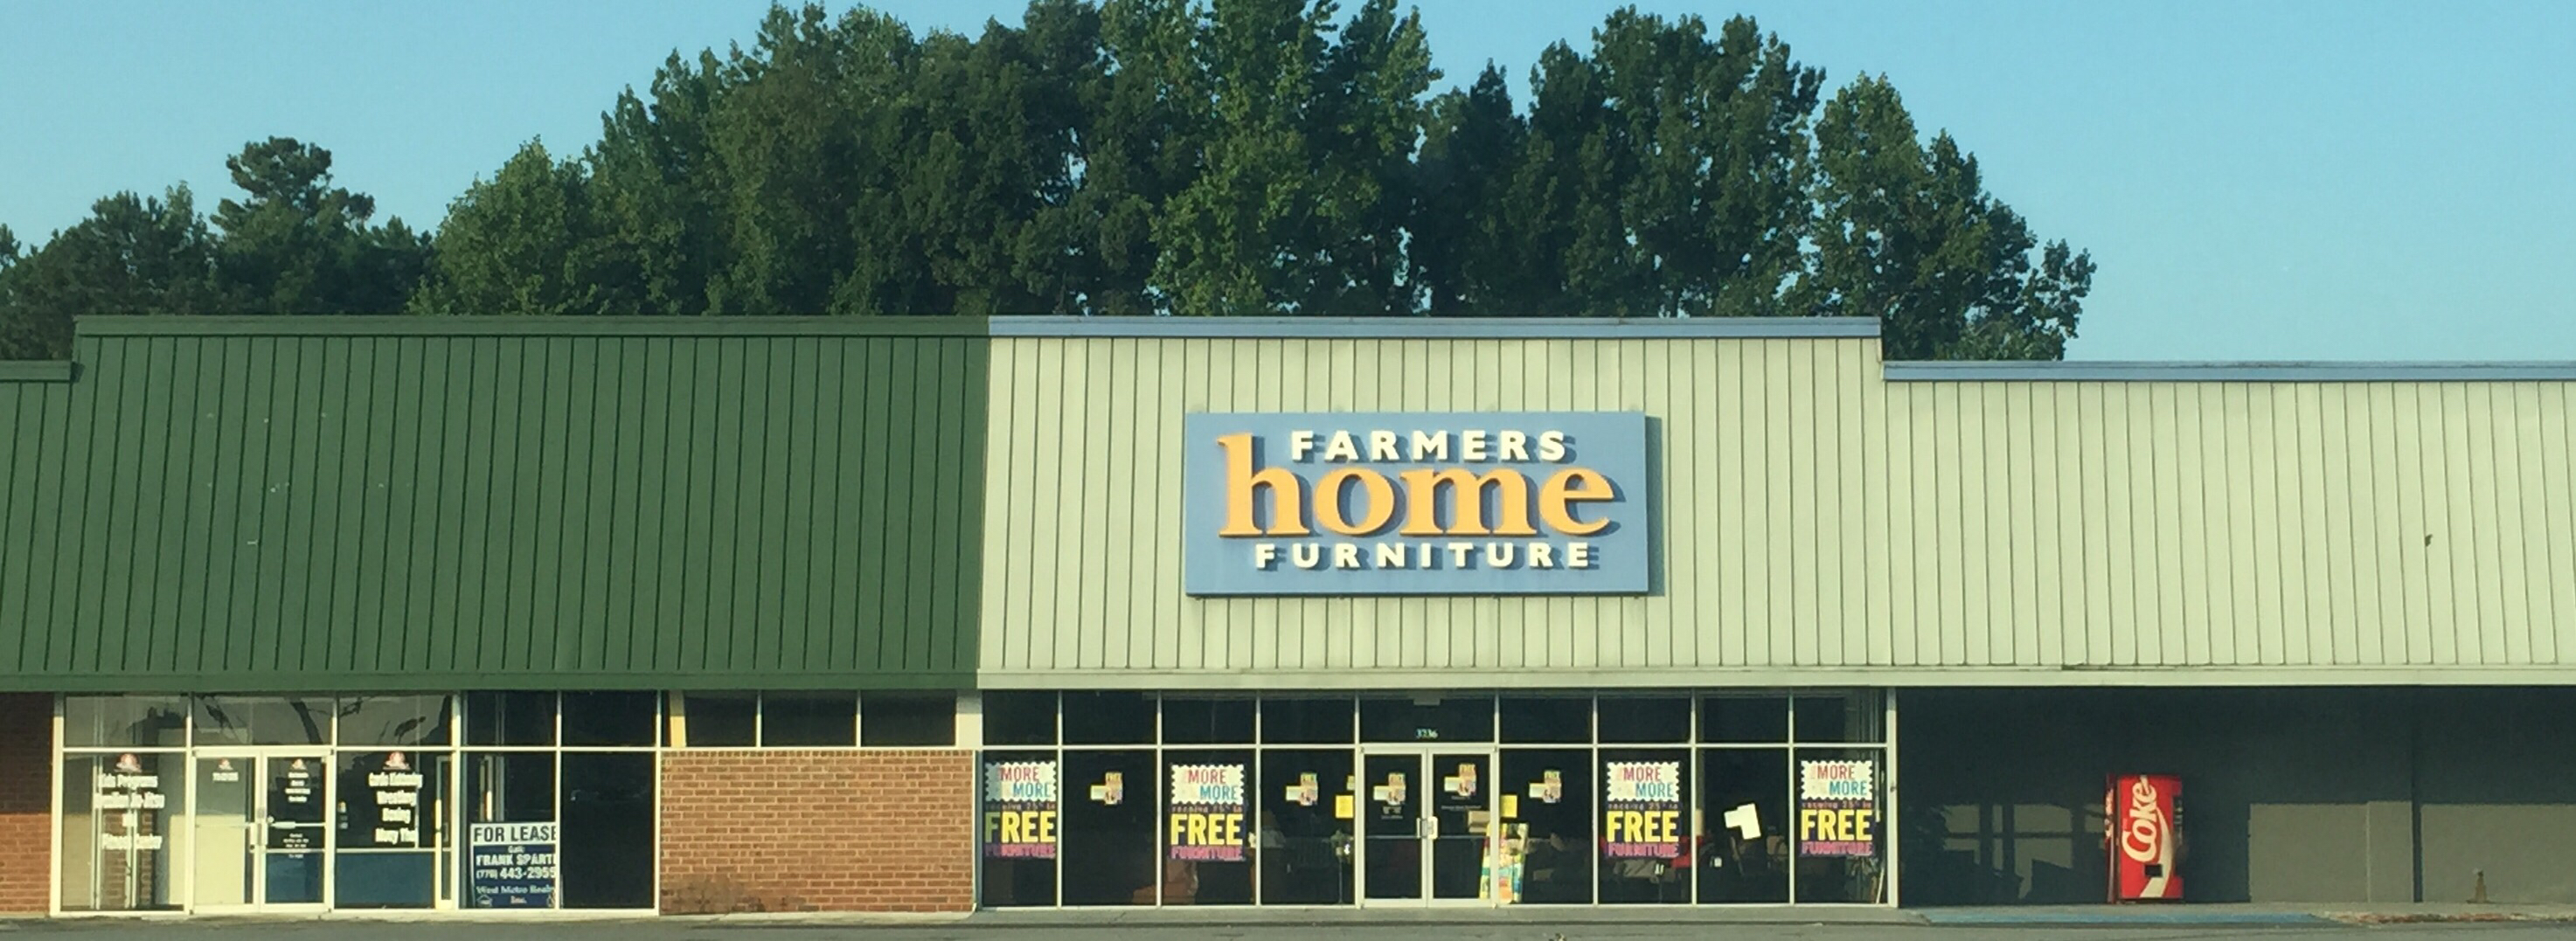 Farmers Home Furniture 3736 Atlanta Hwy Hiram Ga 30141 Yp Com